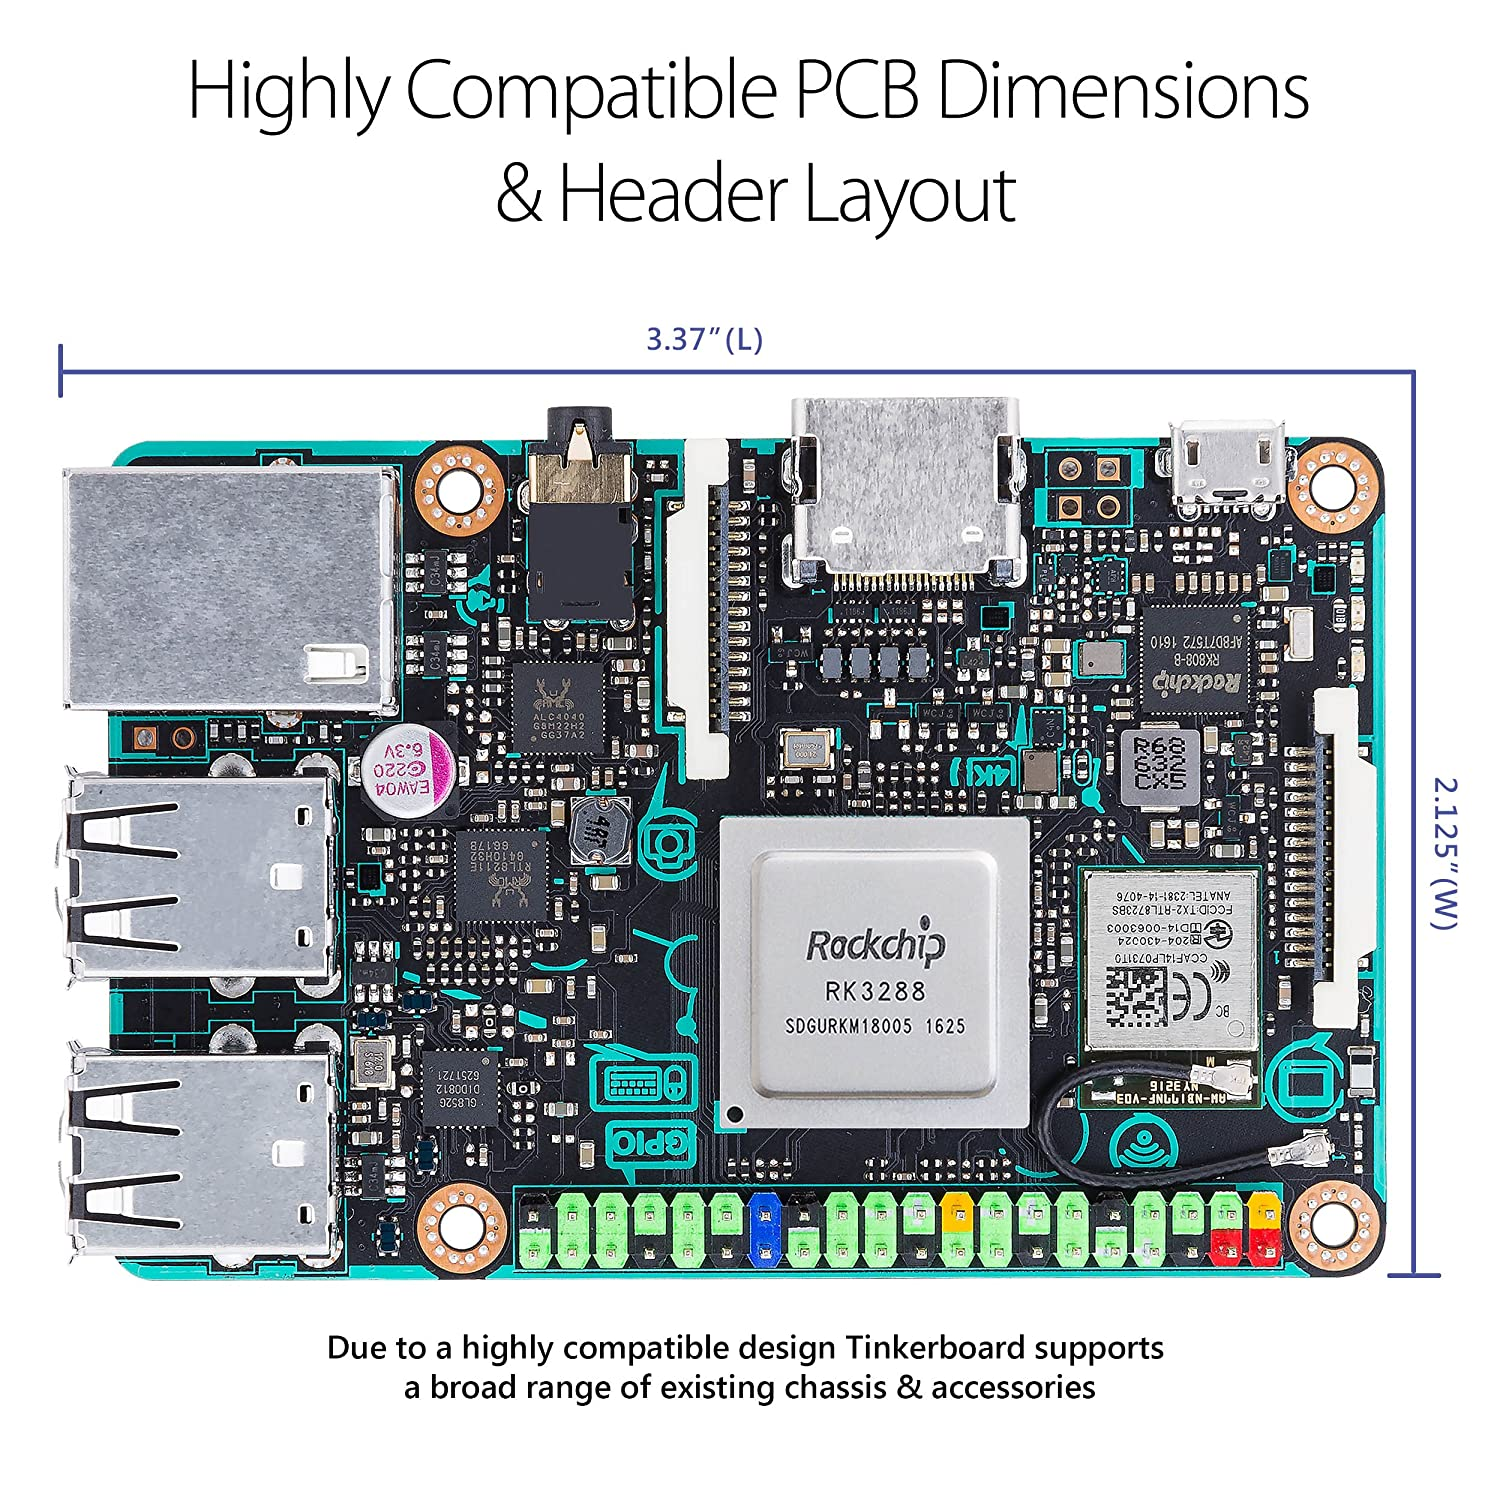 Asus Sbc Tinker Board Rk3288 Soc 18ghz Quad Core Cpu Simple Circuit 2 What Really Scared Me Back 600mhz Mali T764 Gpu 2gb Computers Accessories